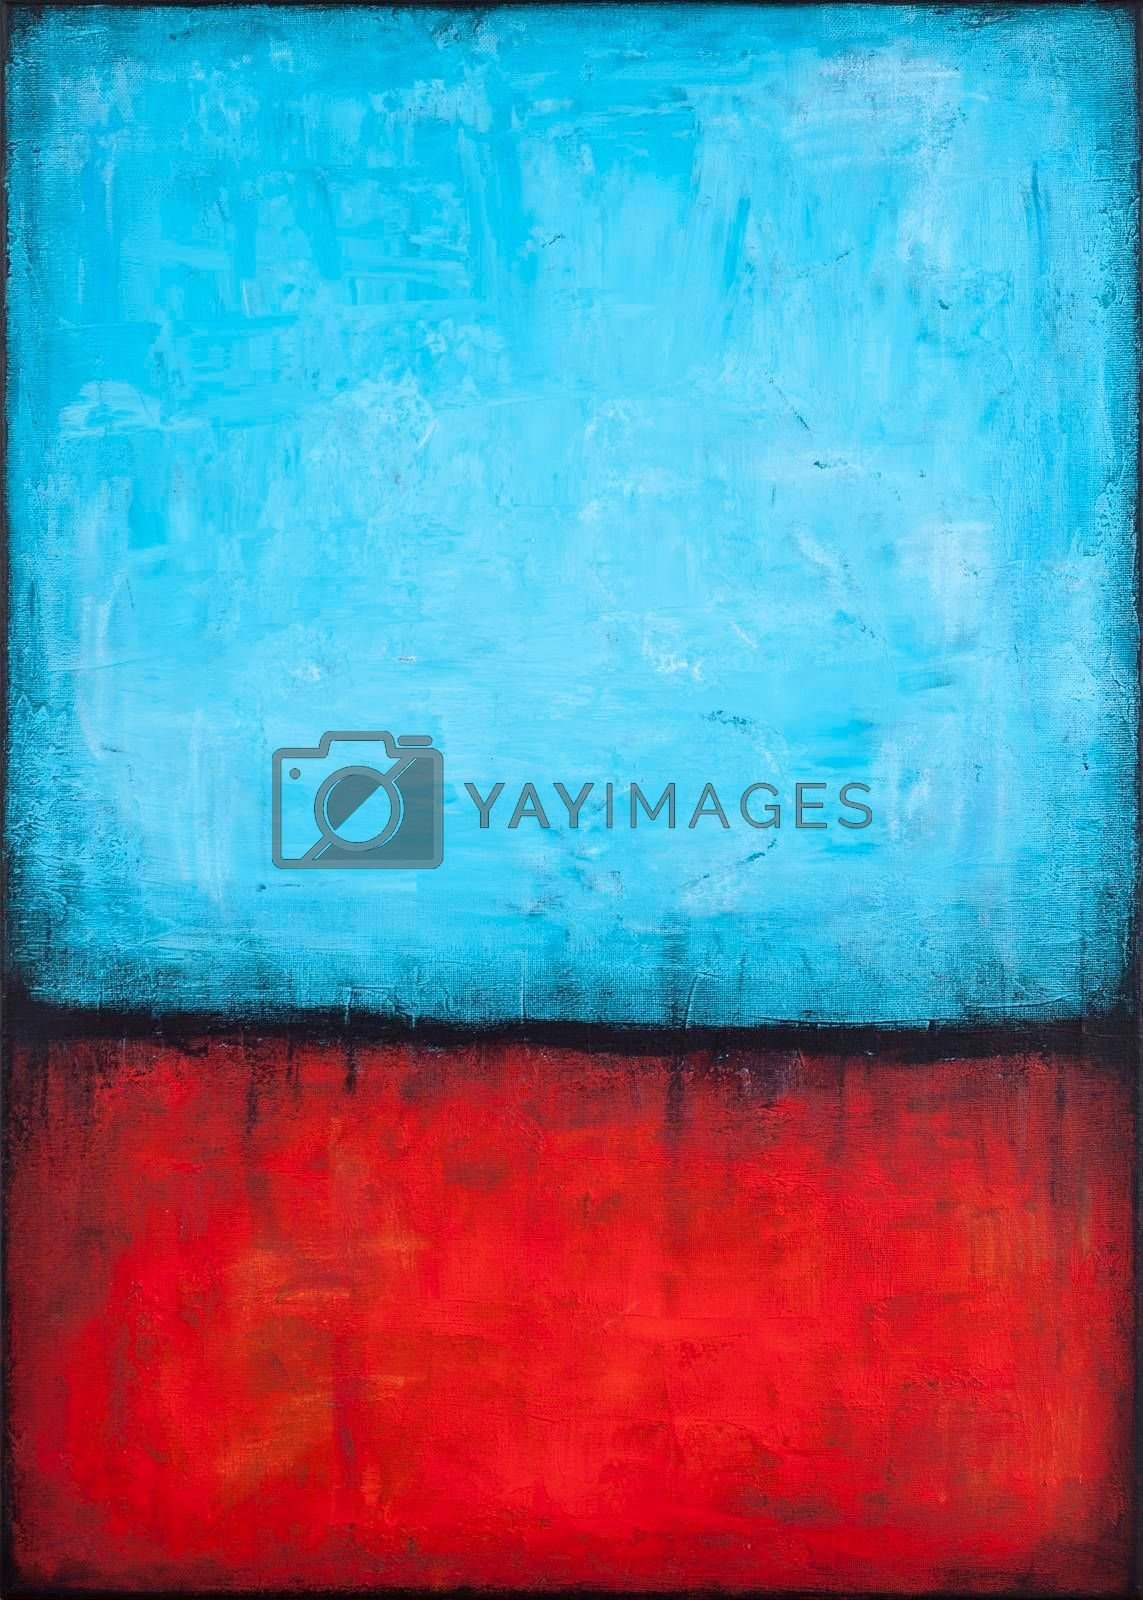 Blue and red grunge colored texture background. Decorative painting.